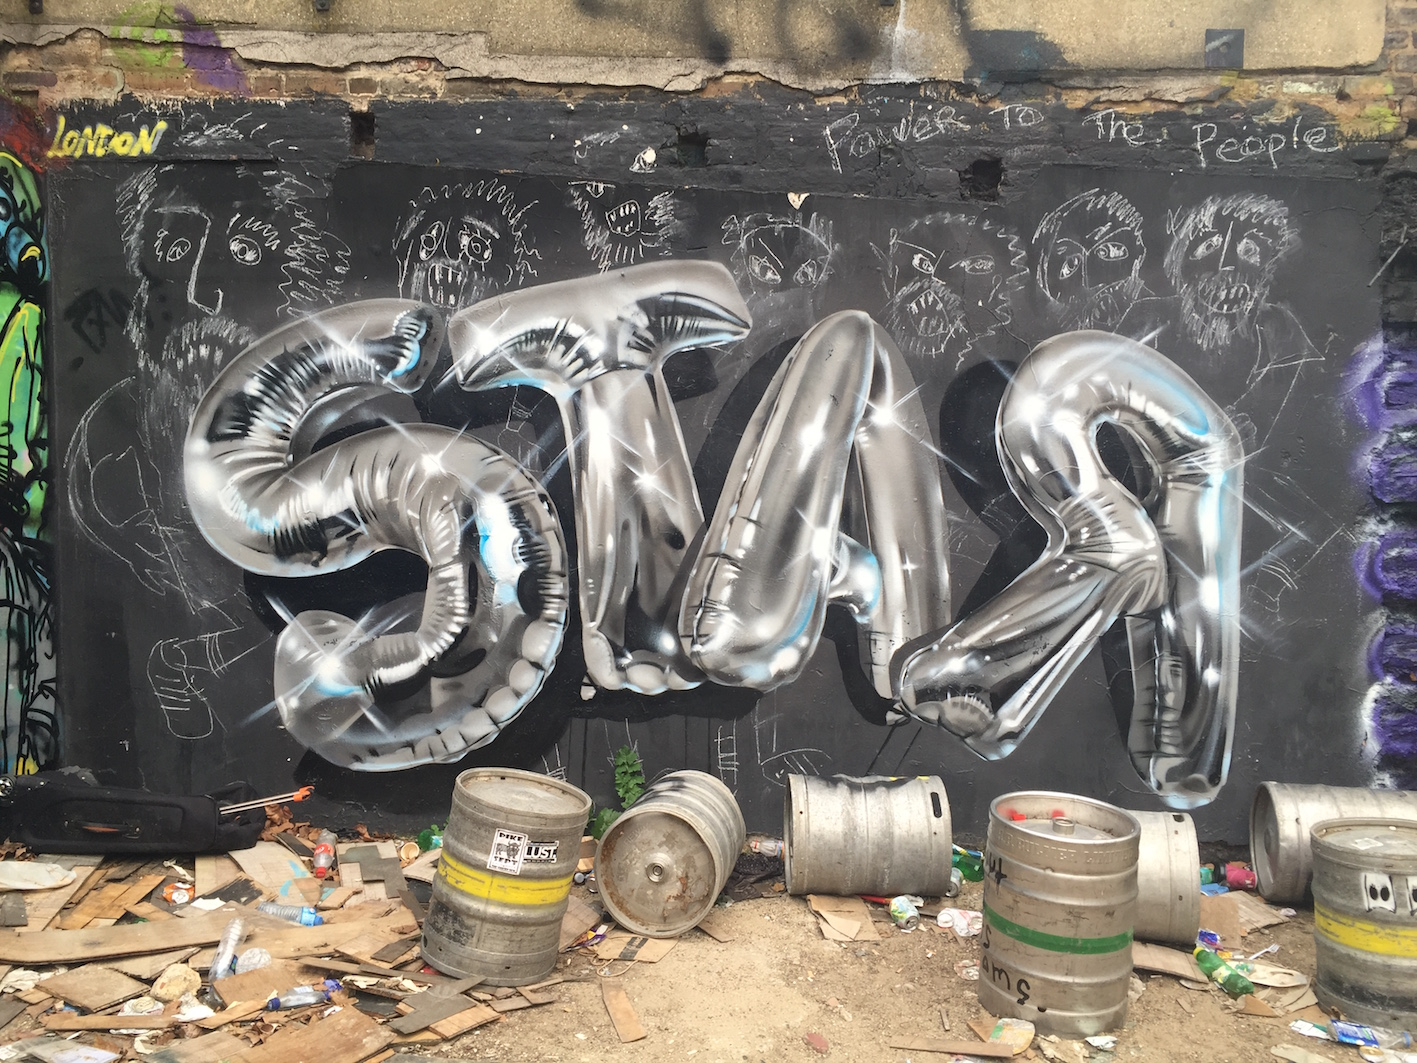 grafitti spelling out 'star' in silver